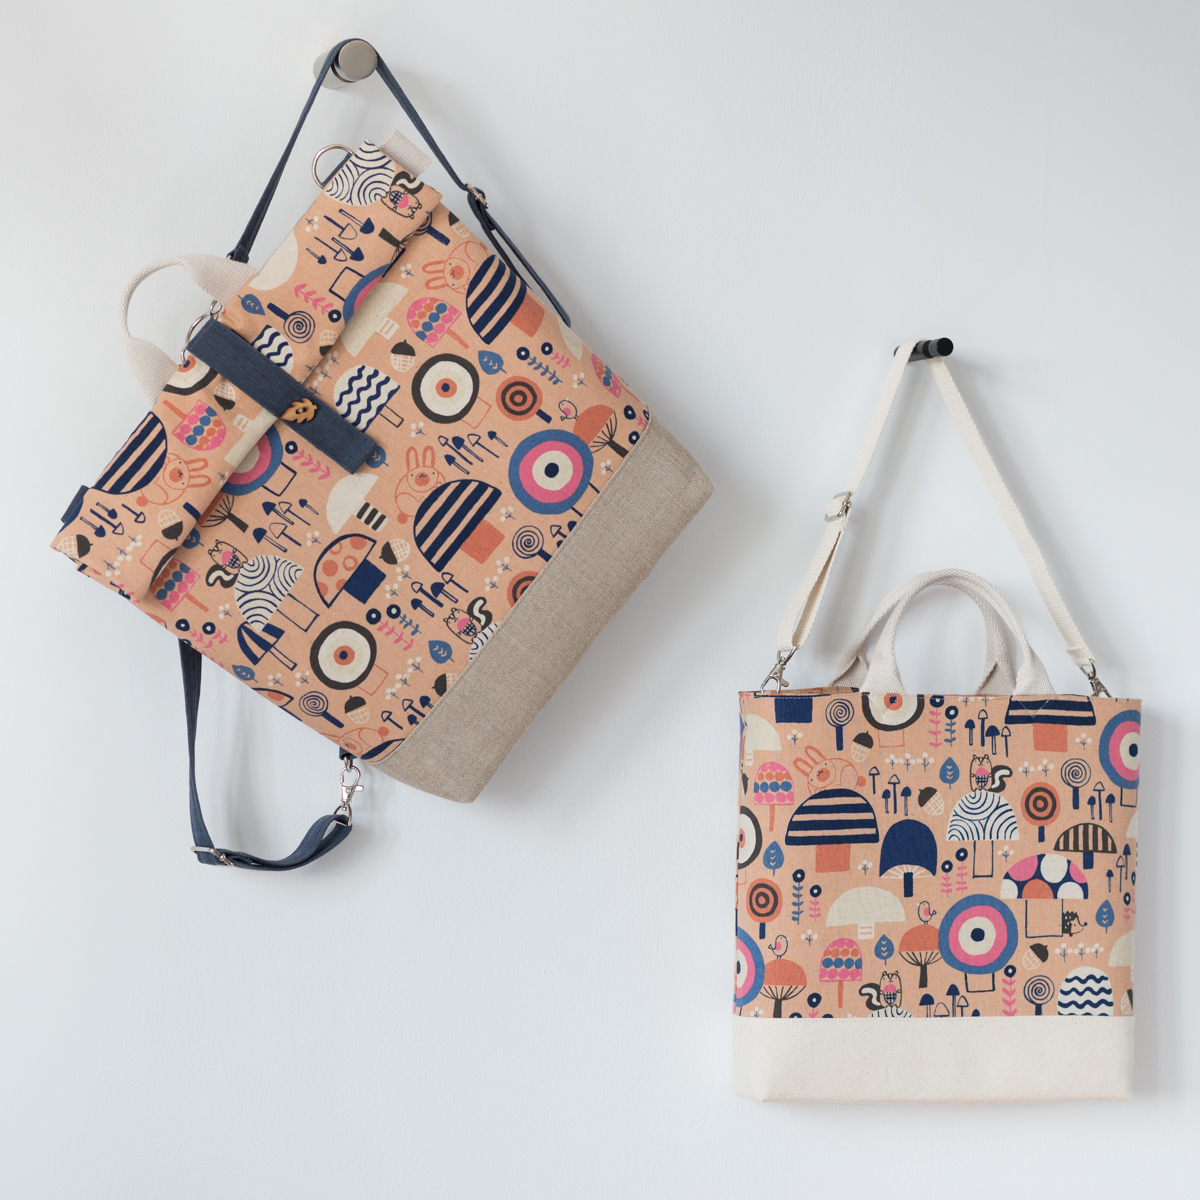 Roll-top rucksack and tote for the two best kids to make stuff for